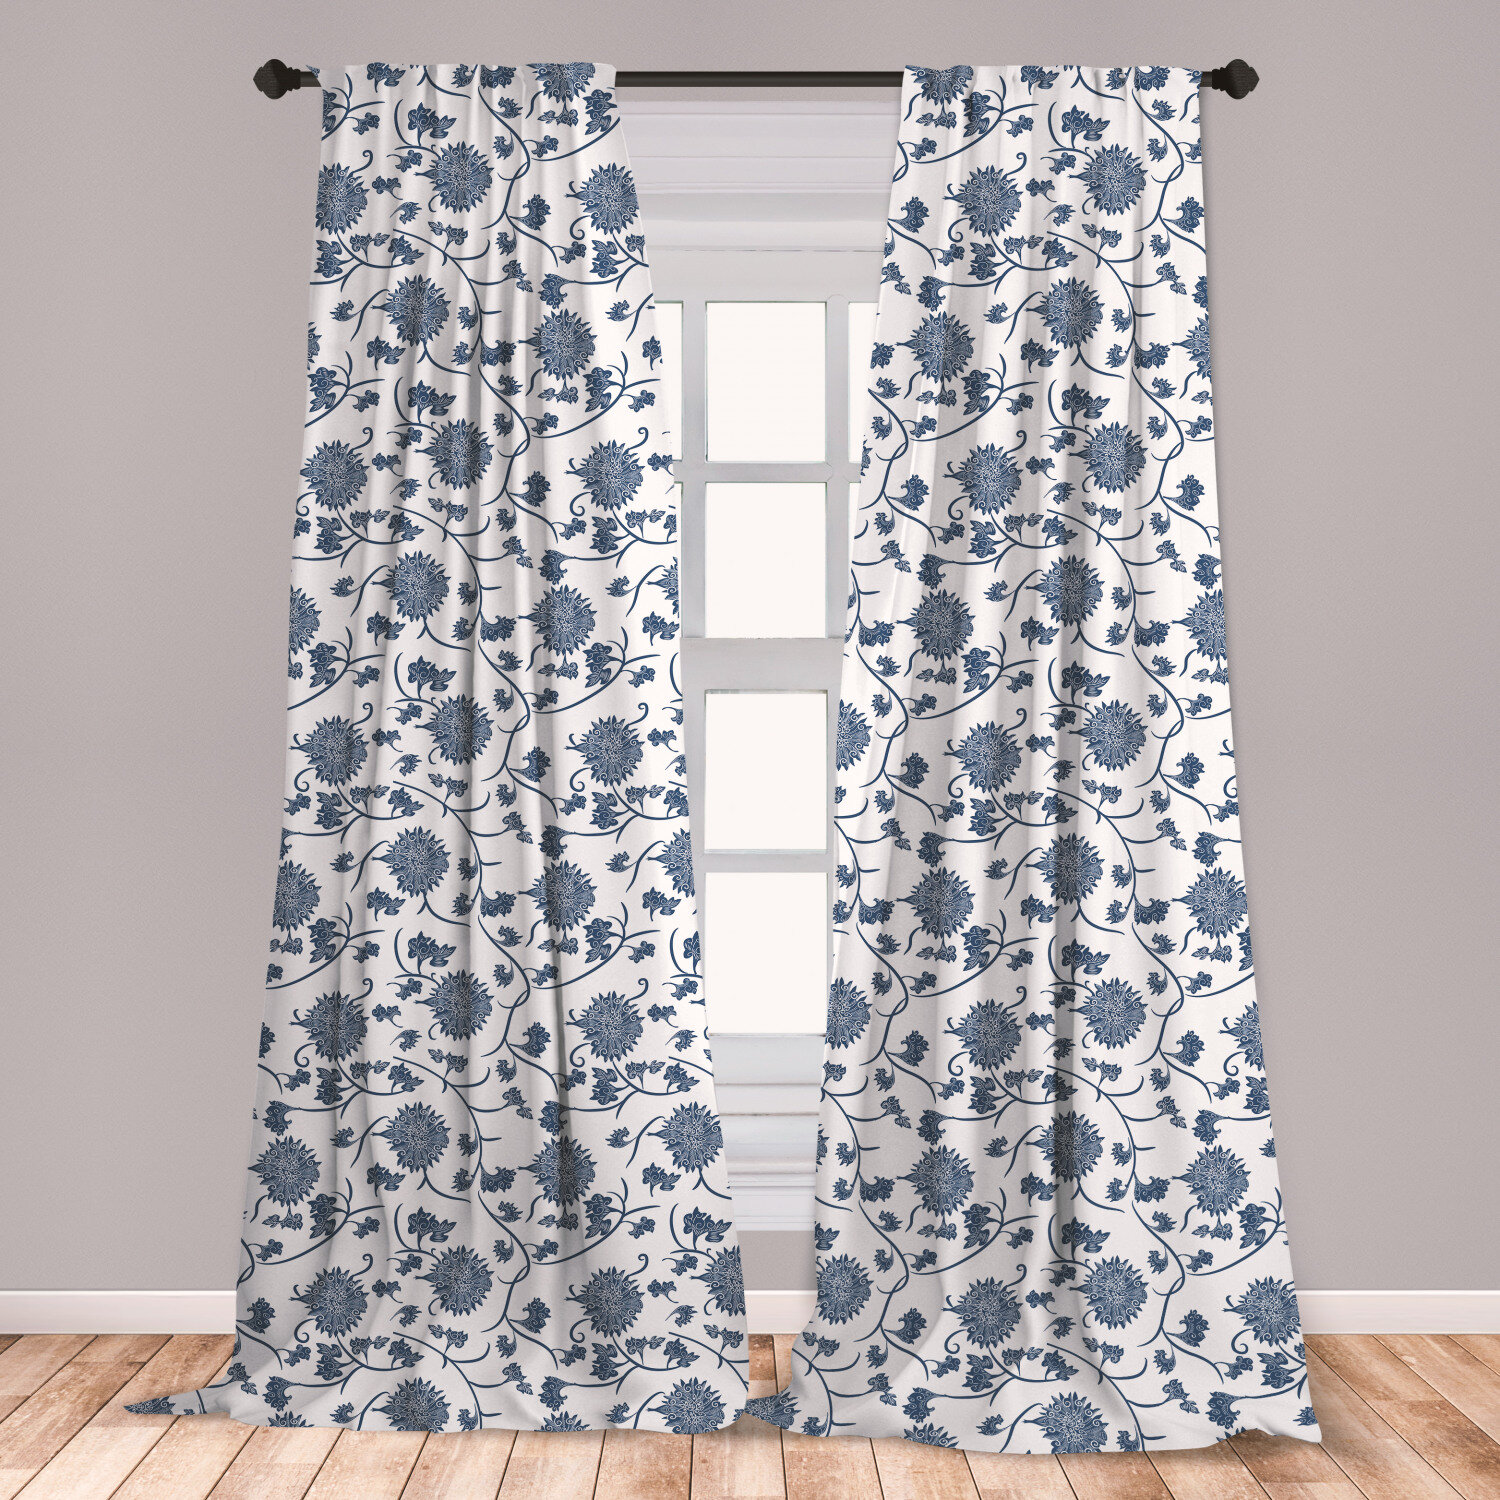 East Urban Home Ambesonne Blue Curtains Chinese Floral Garden Pattern Nature Inspirations With Traditional Ornament Design Window Treatments 2 Panel Set For Living Room Bedroom Decor 56 X 63 Blue White Reviews Wayfair